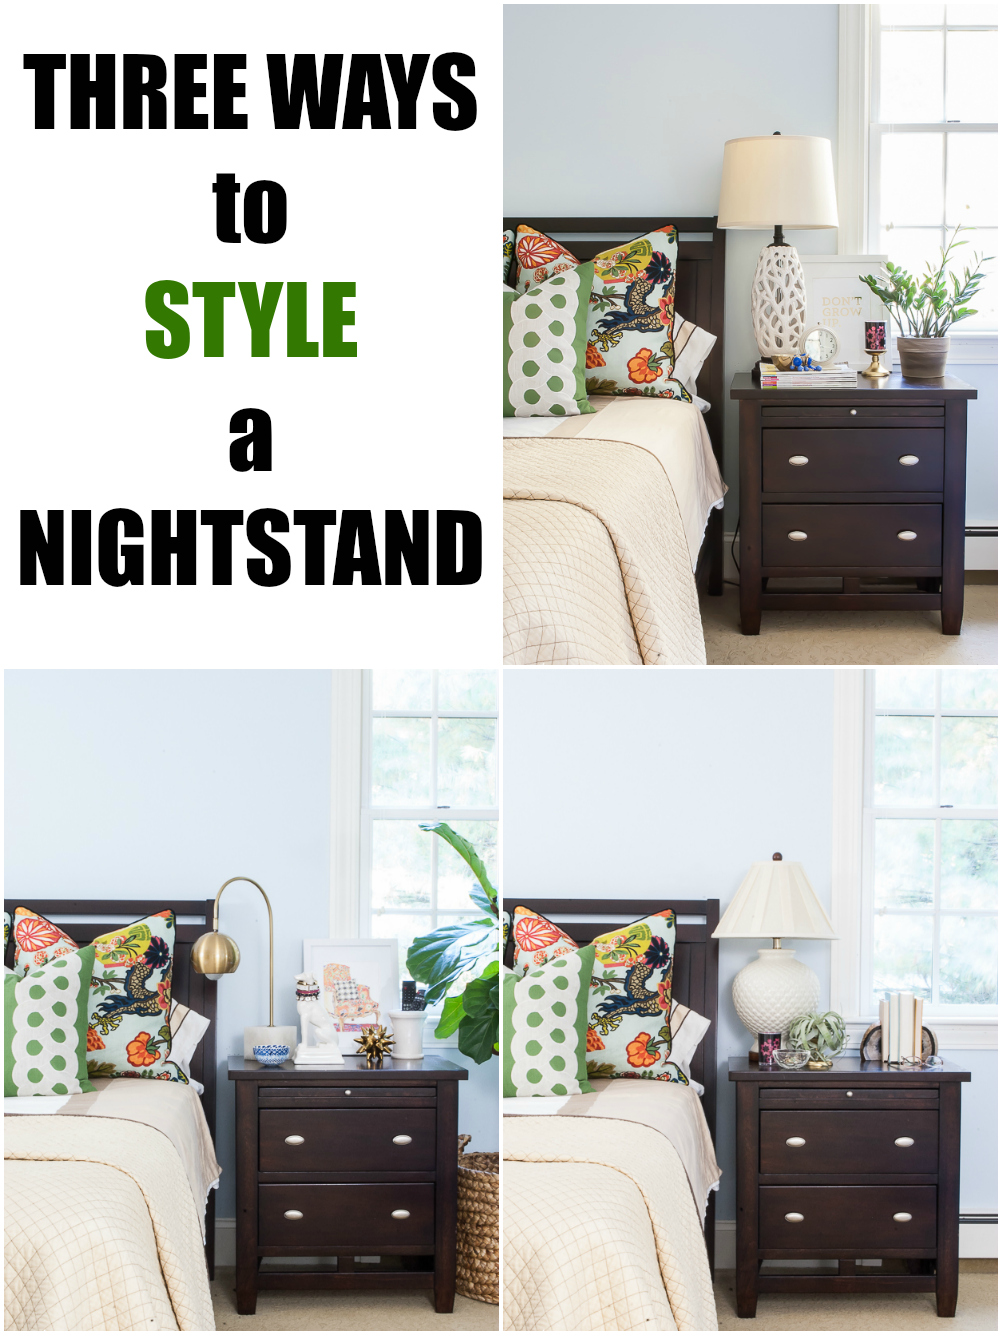 Three ways to style a nightstand with both function and pretty in mind!